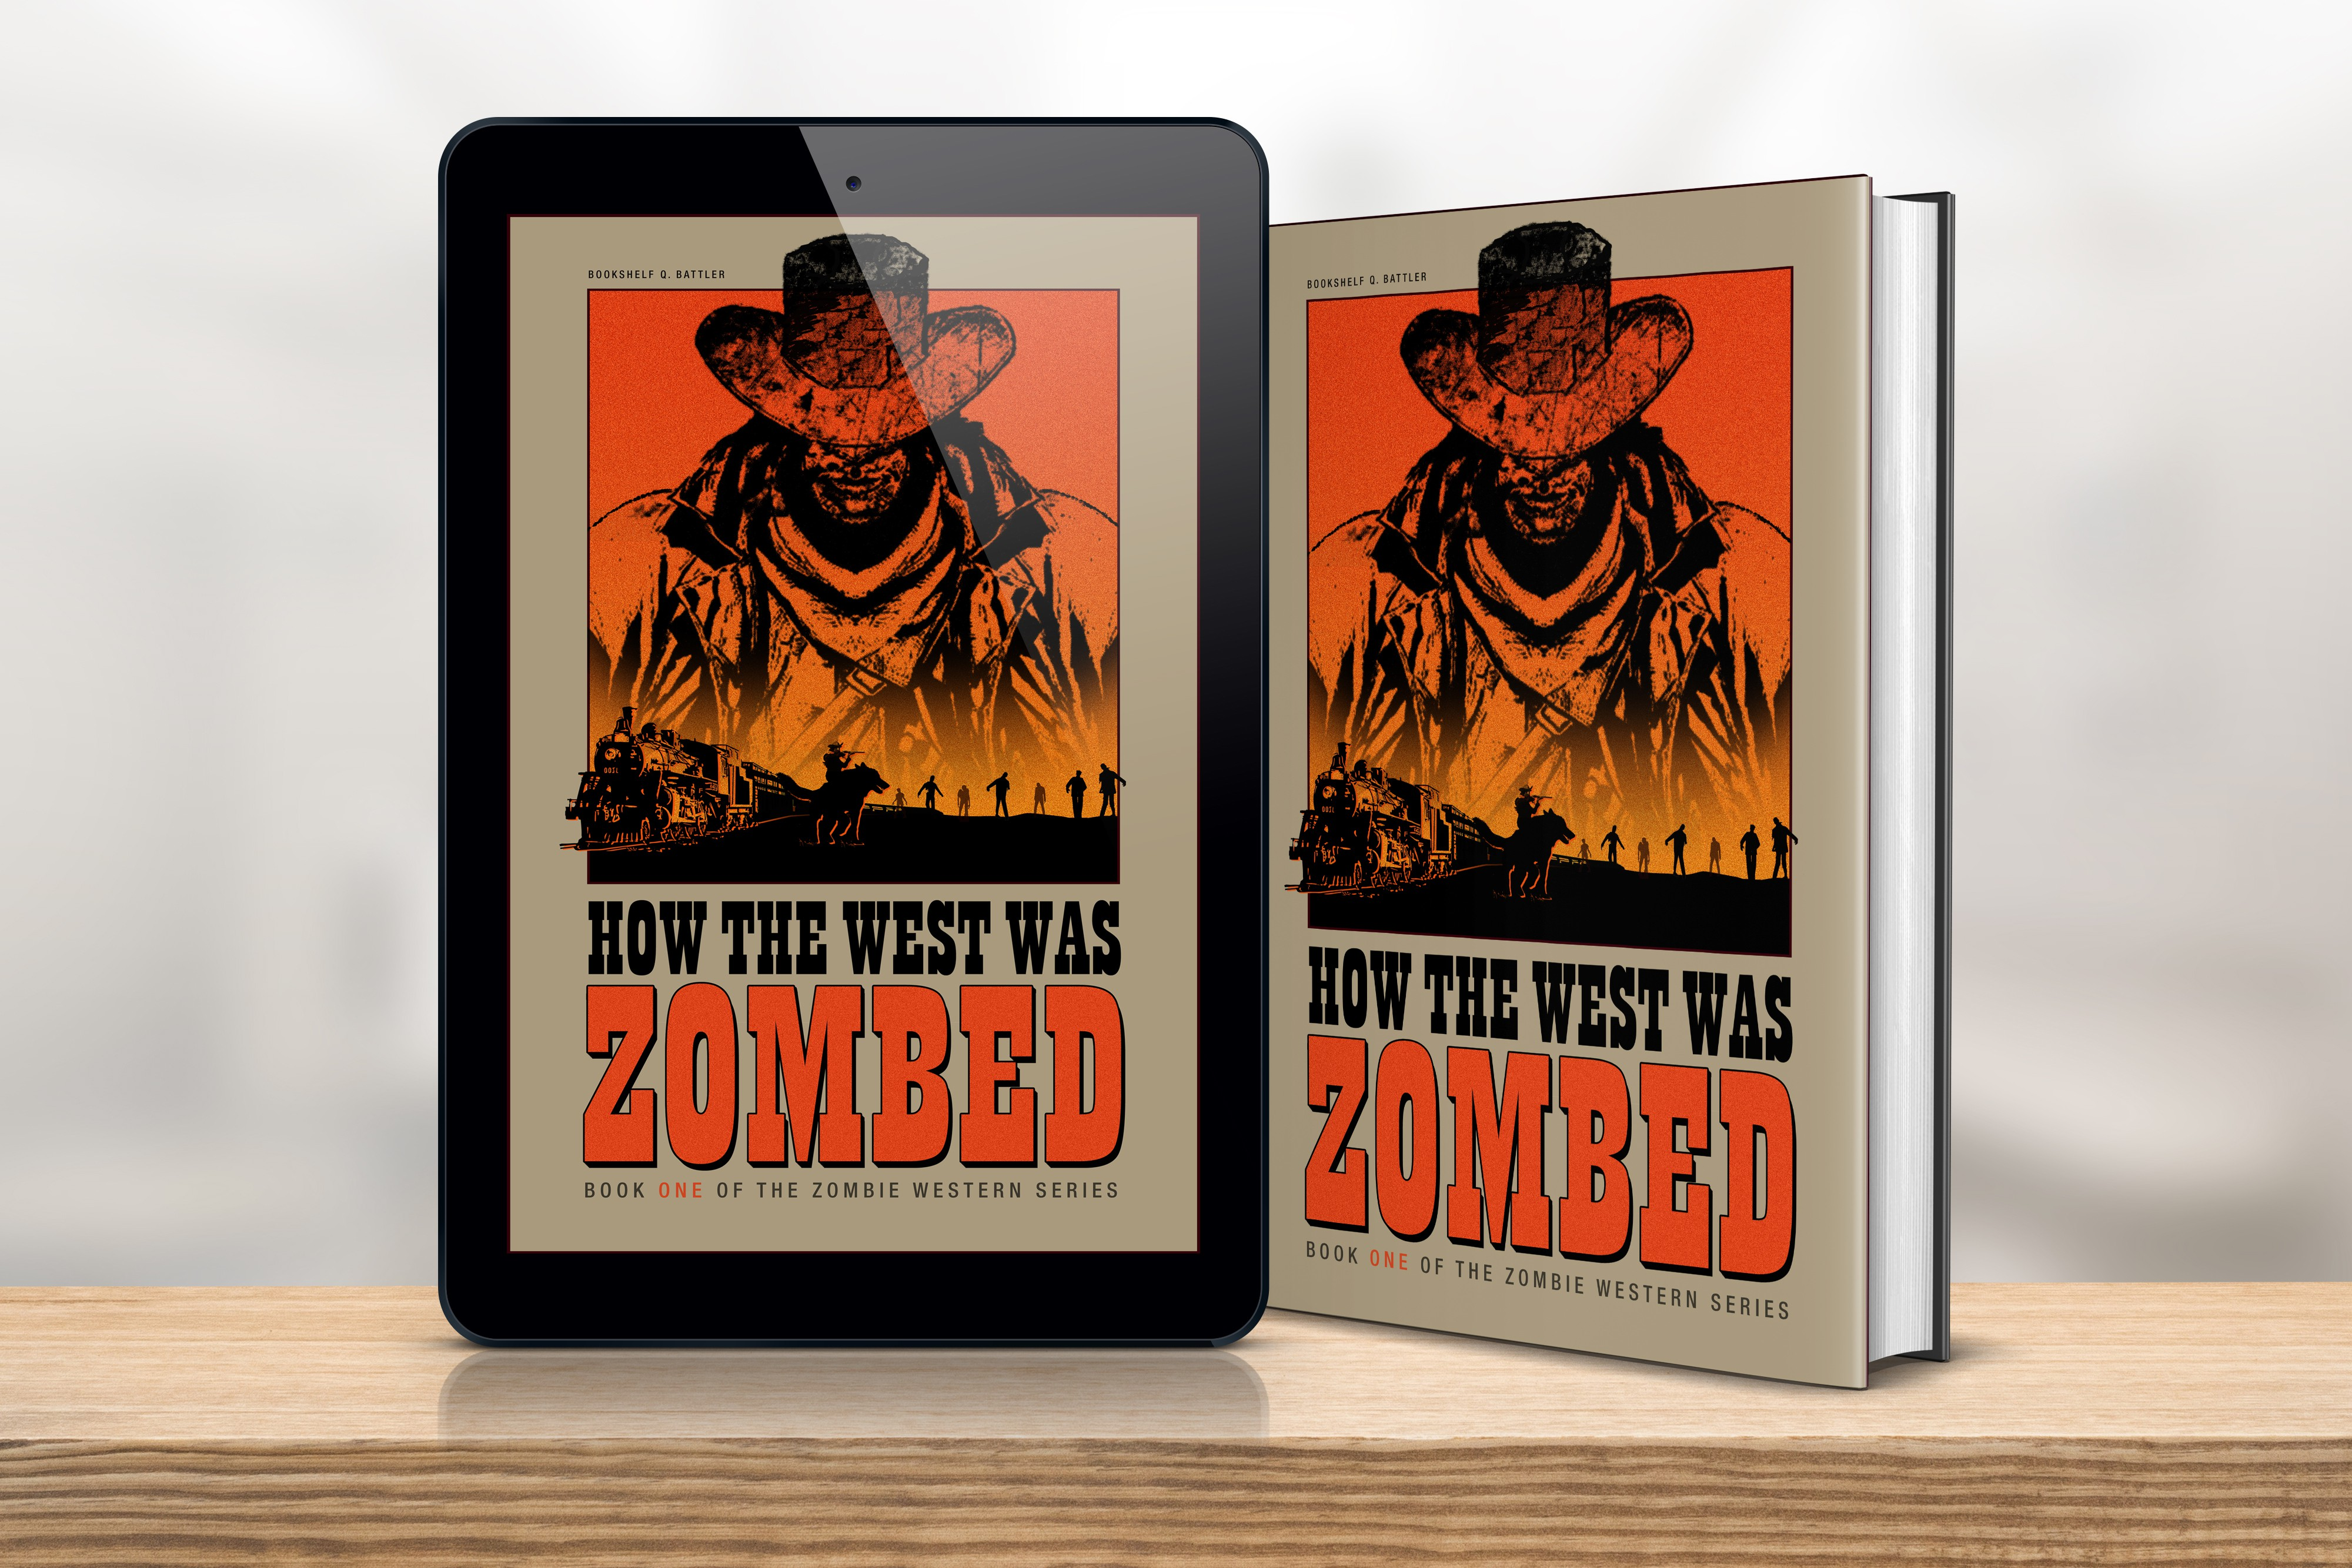 How the West Was Zombed